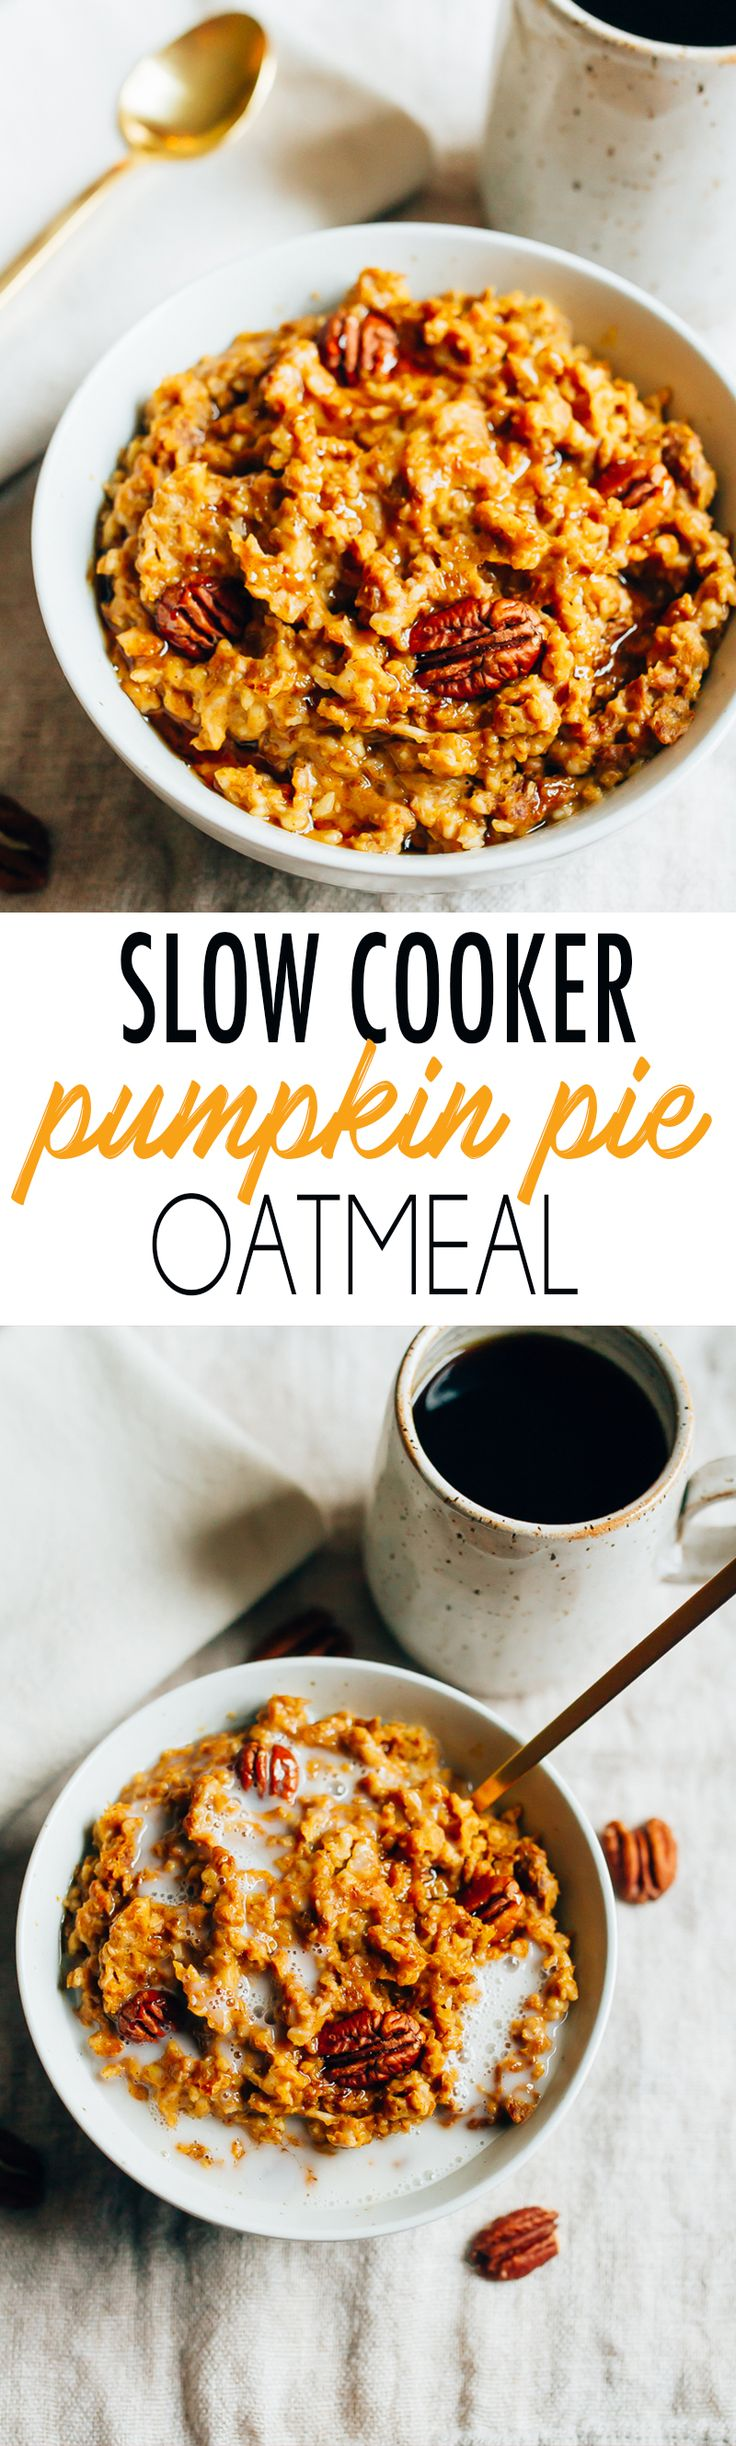 Have pumpkin pie for breakfast with this healthy slow cooker pumpkin pie oatmeal recipe featuring steel-cut oats cooked overnight with pumpkin puree and spices.